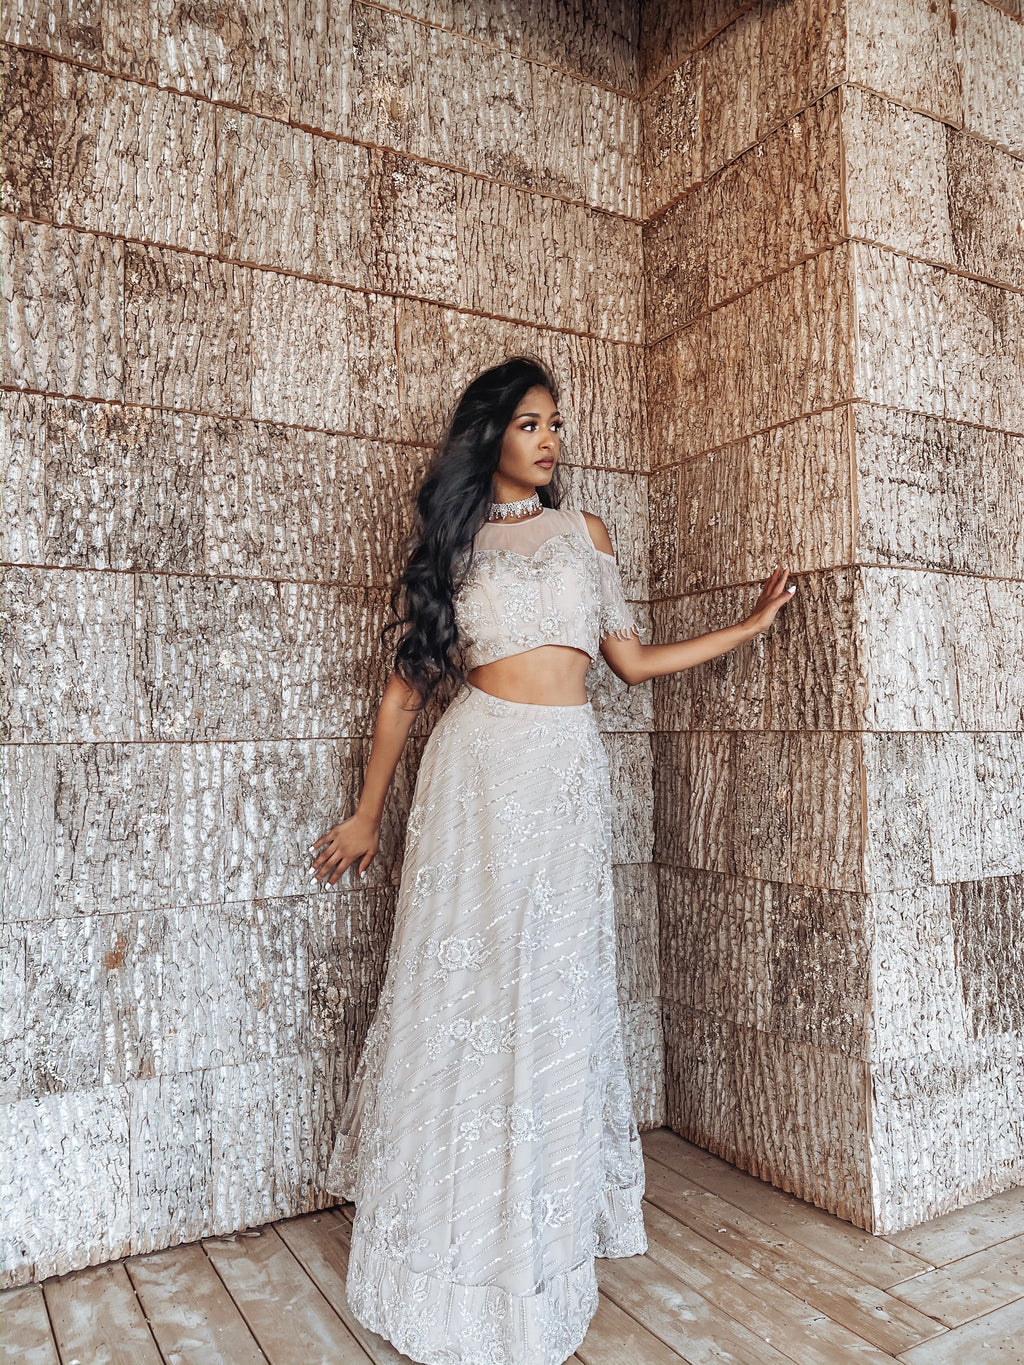 Creamish Beige Bridal Reception Outfit with Silver Sequins Aari and Zardosi Embroidery - Sushma Patel Indian Clothing Boutique in Atlanta, USA